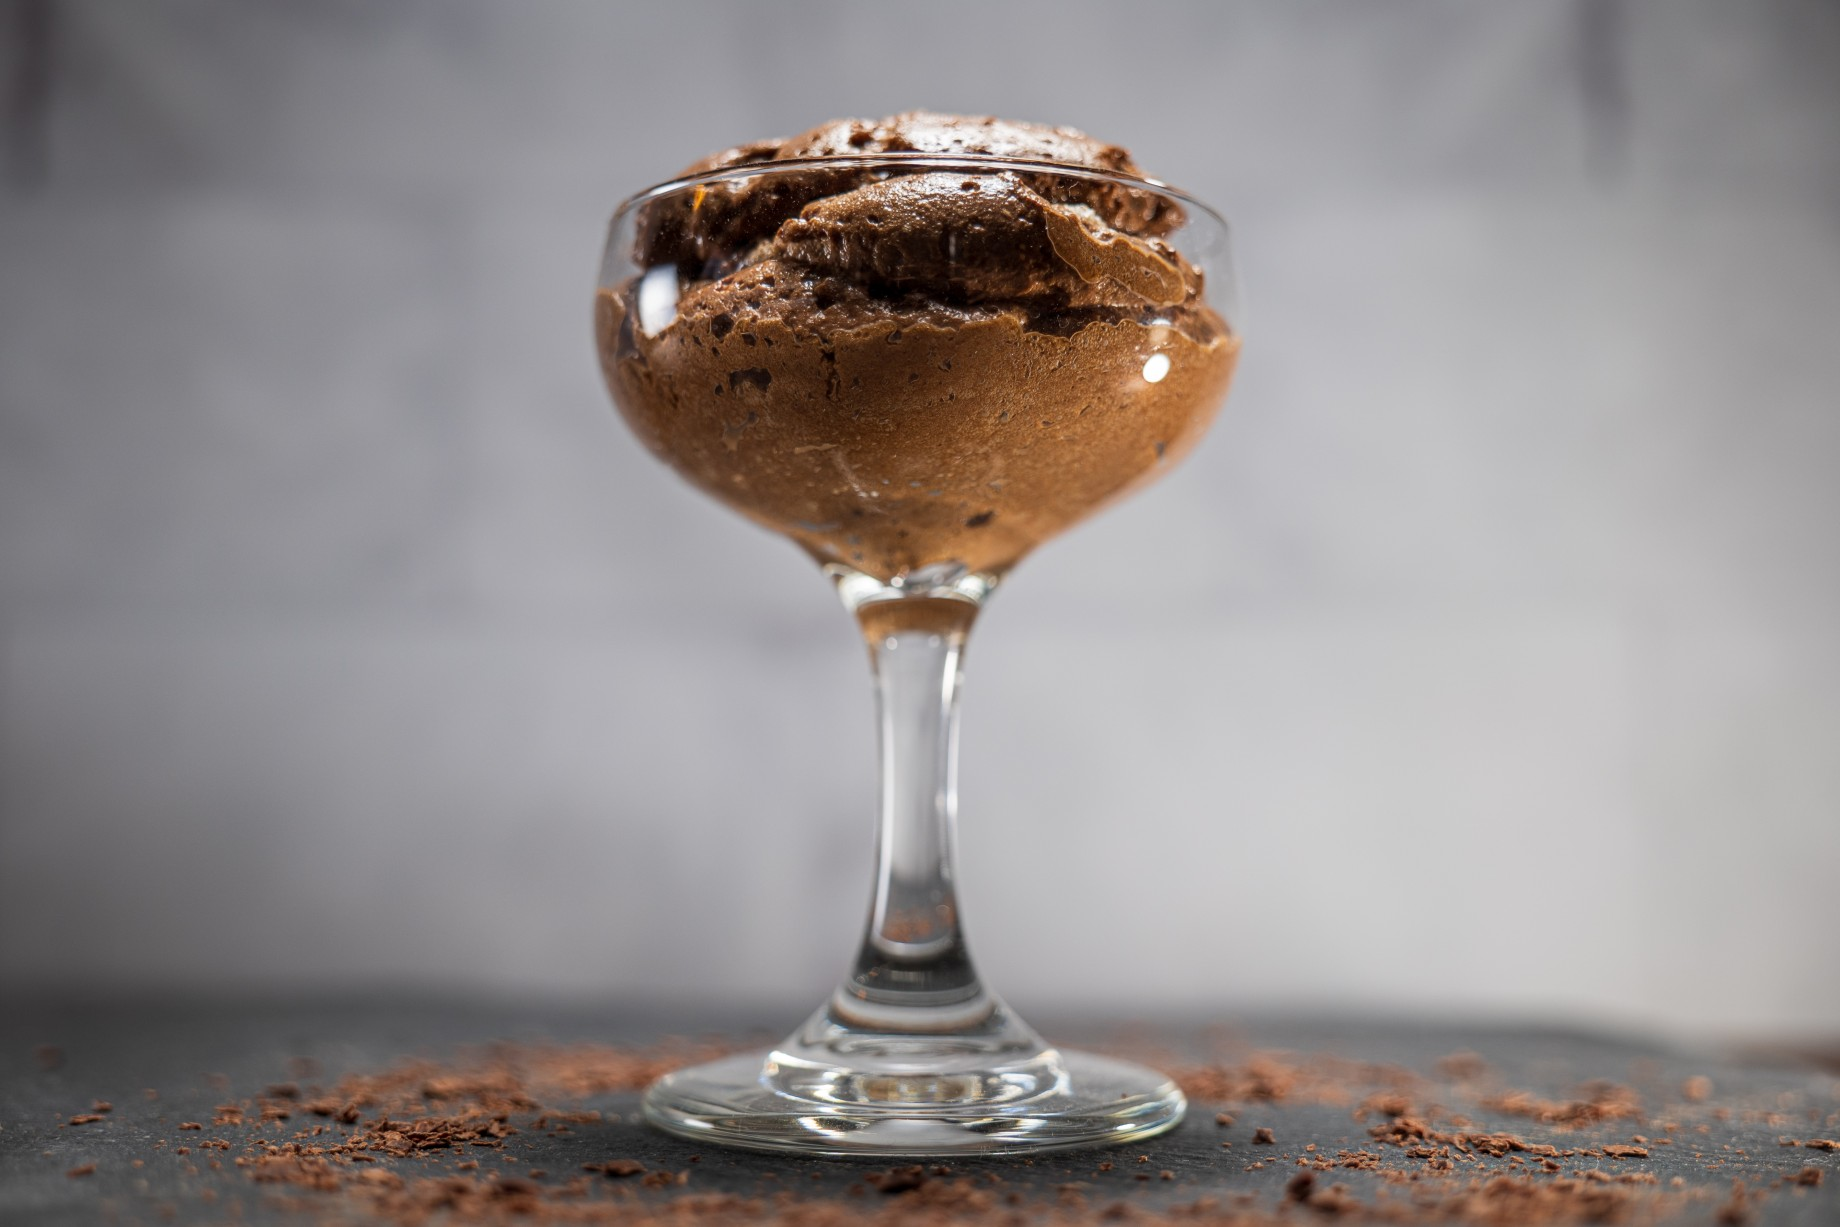 2 note mousse in a coupe glass.